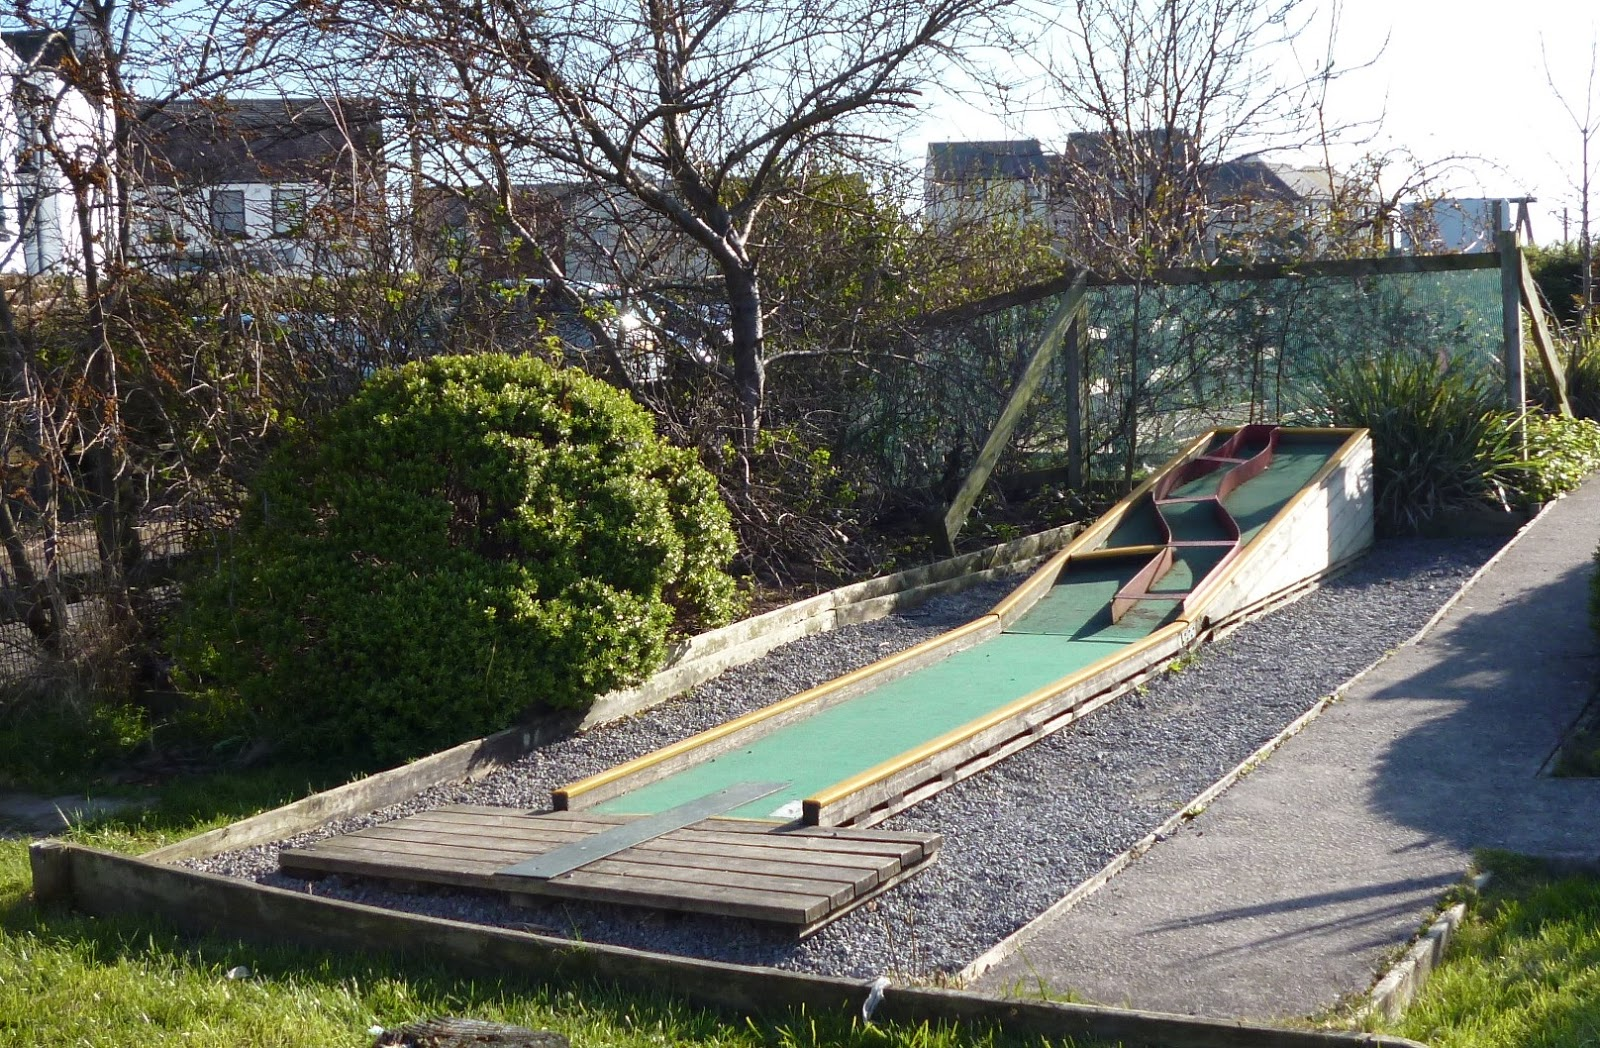 ... the Crazy Golf course at the Lake District Coast Aquarium in Maryport